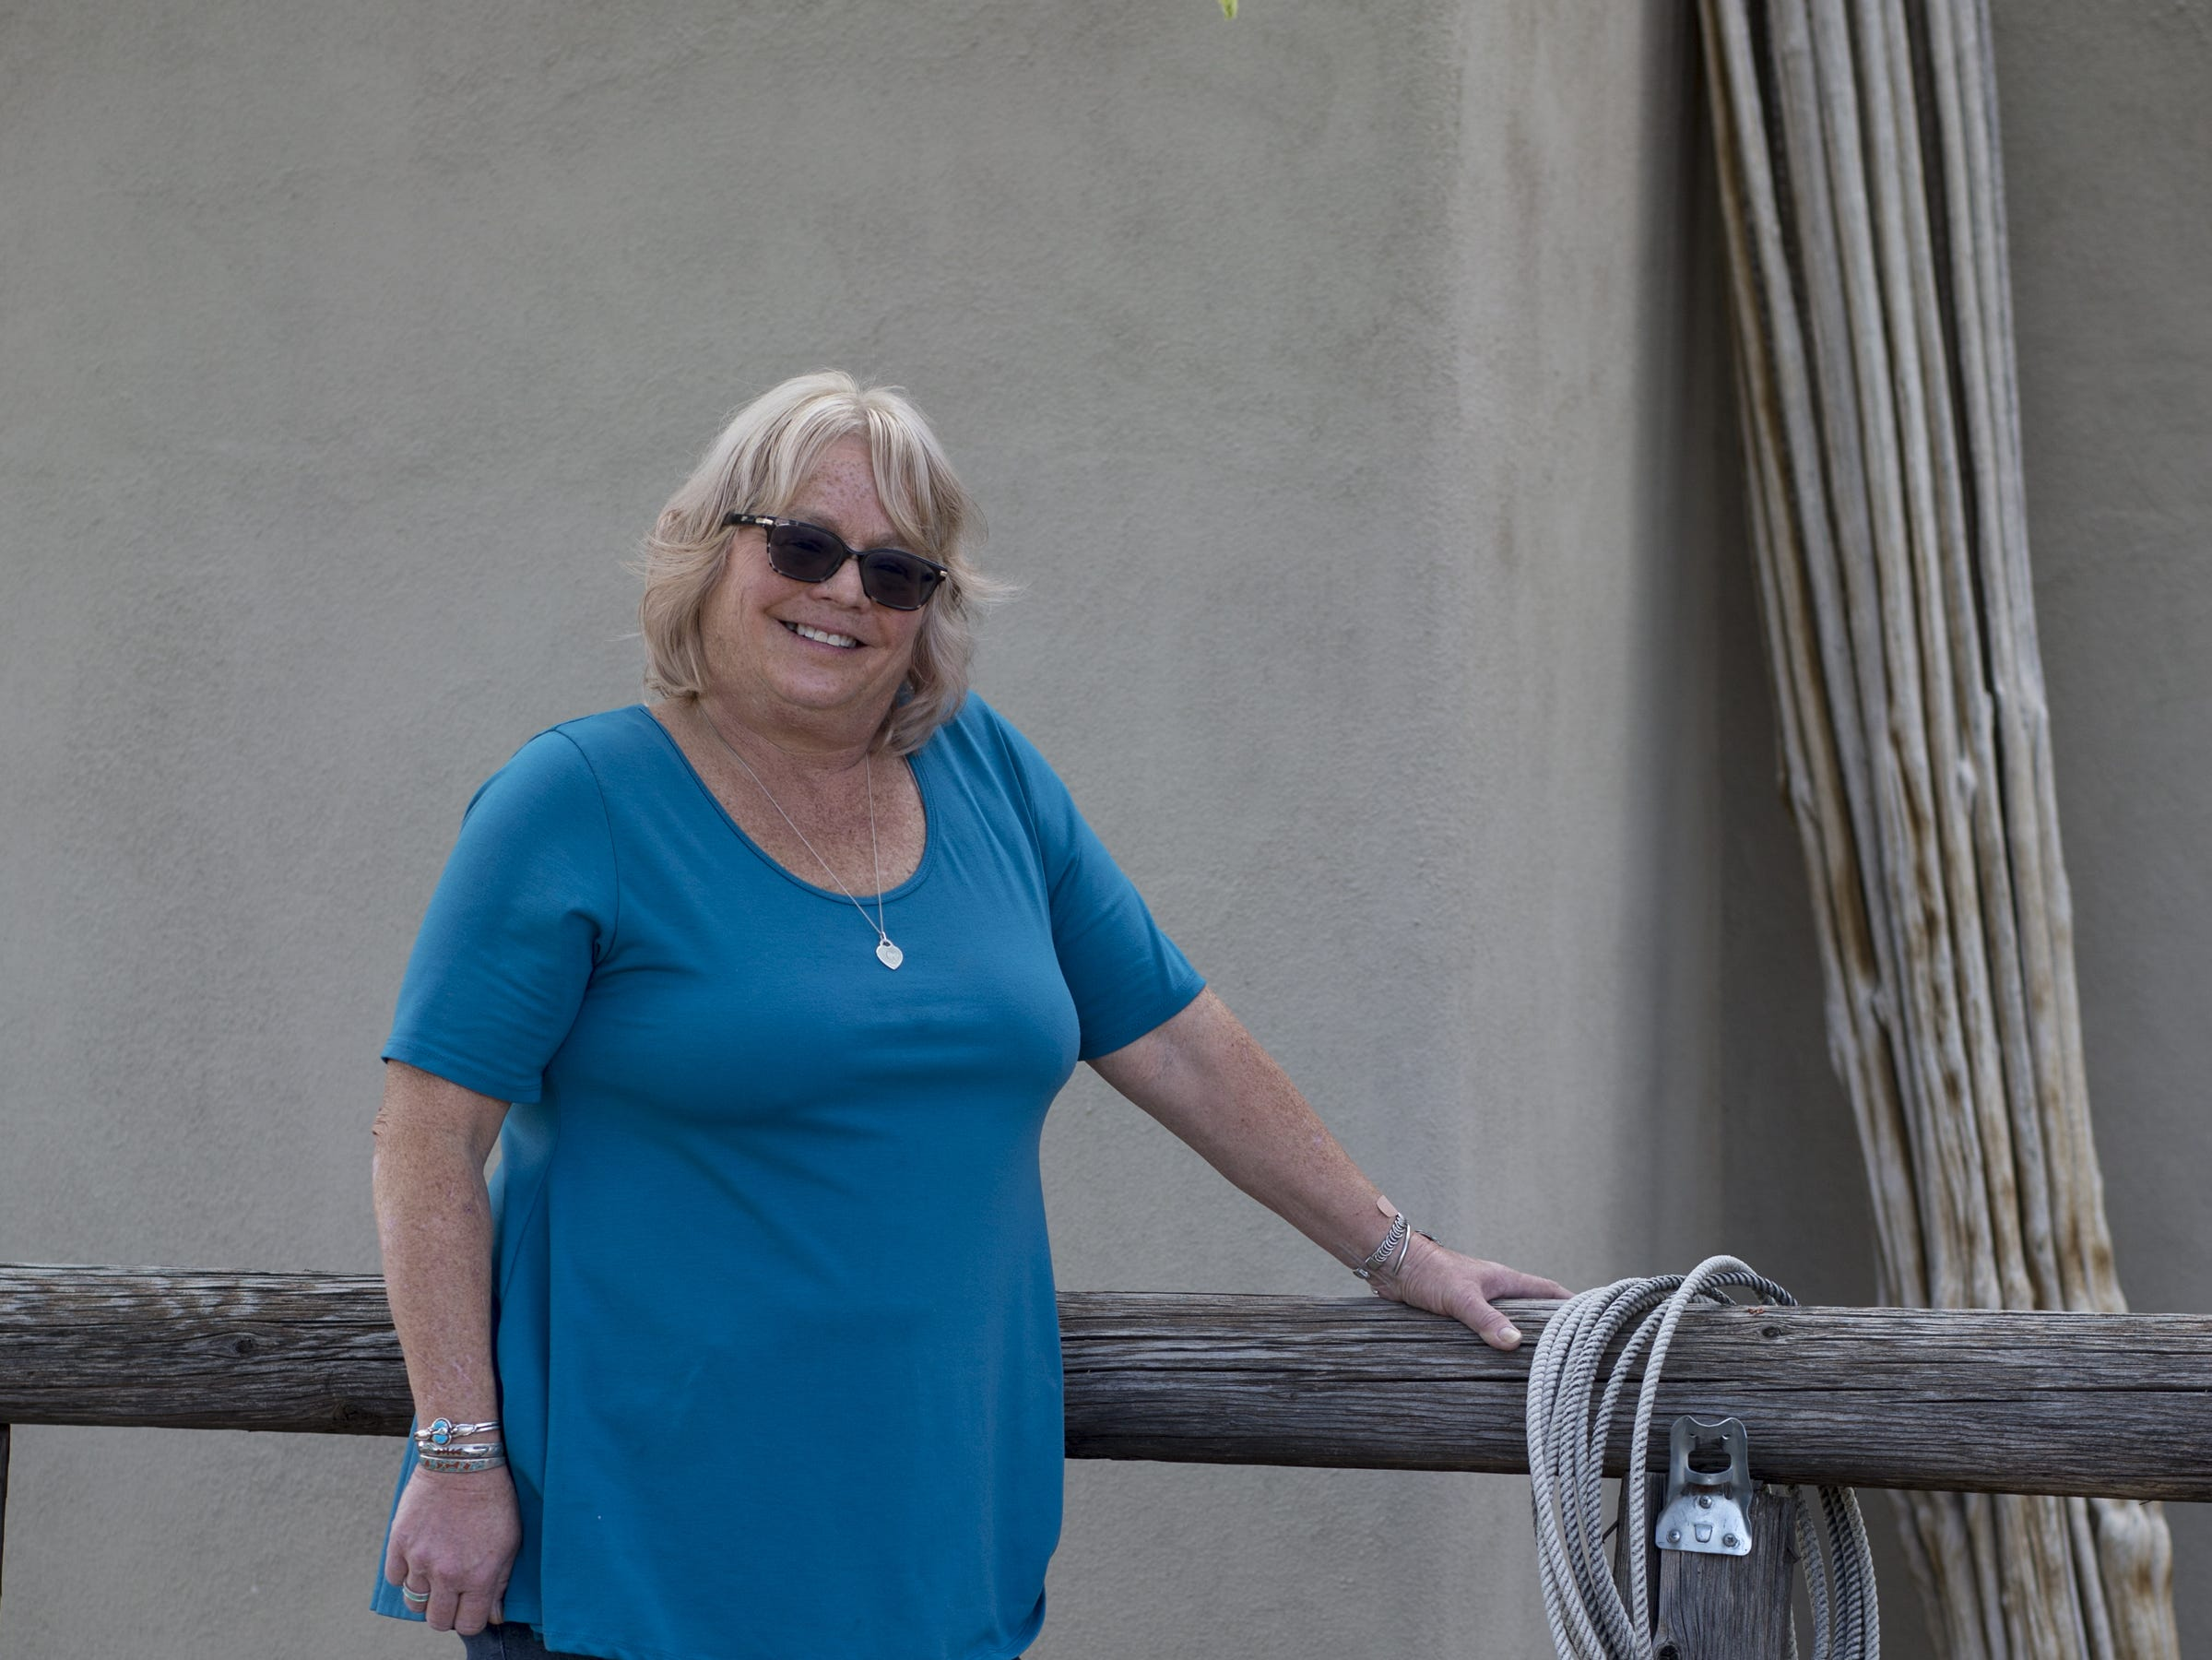 A portrait of Mary Gevarter, April 23, 2019, at her home in New River.